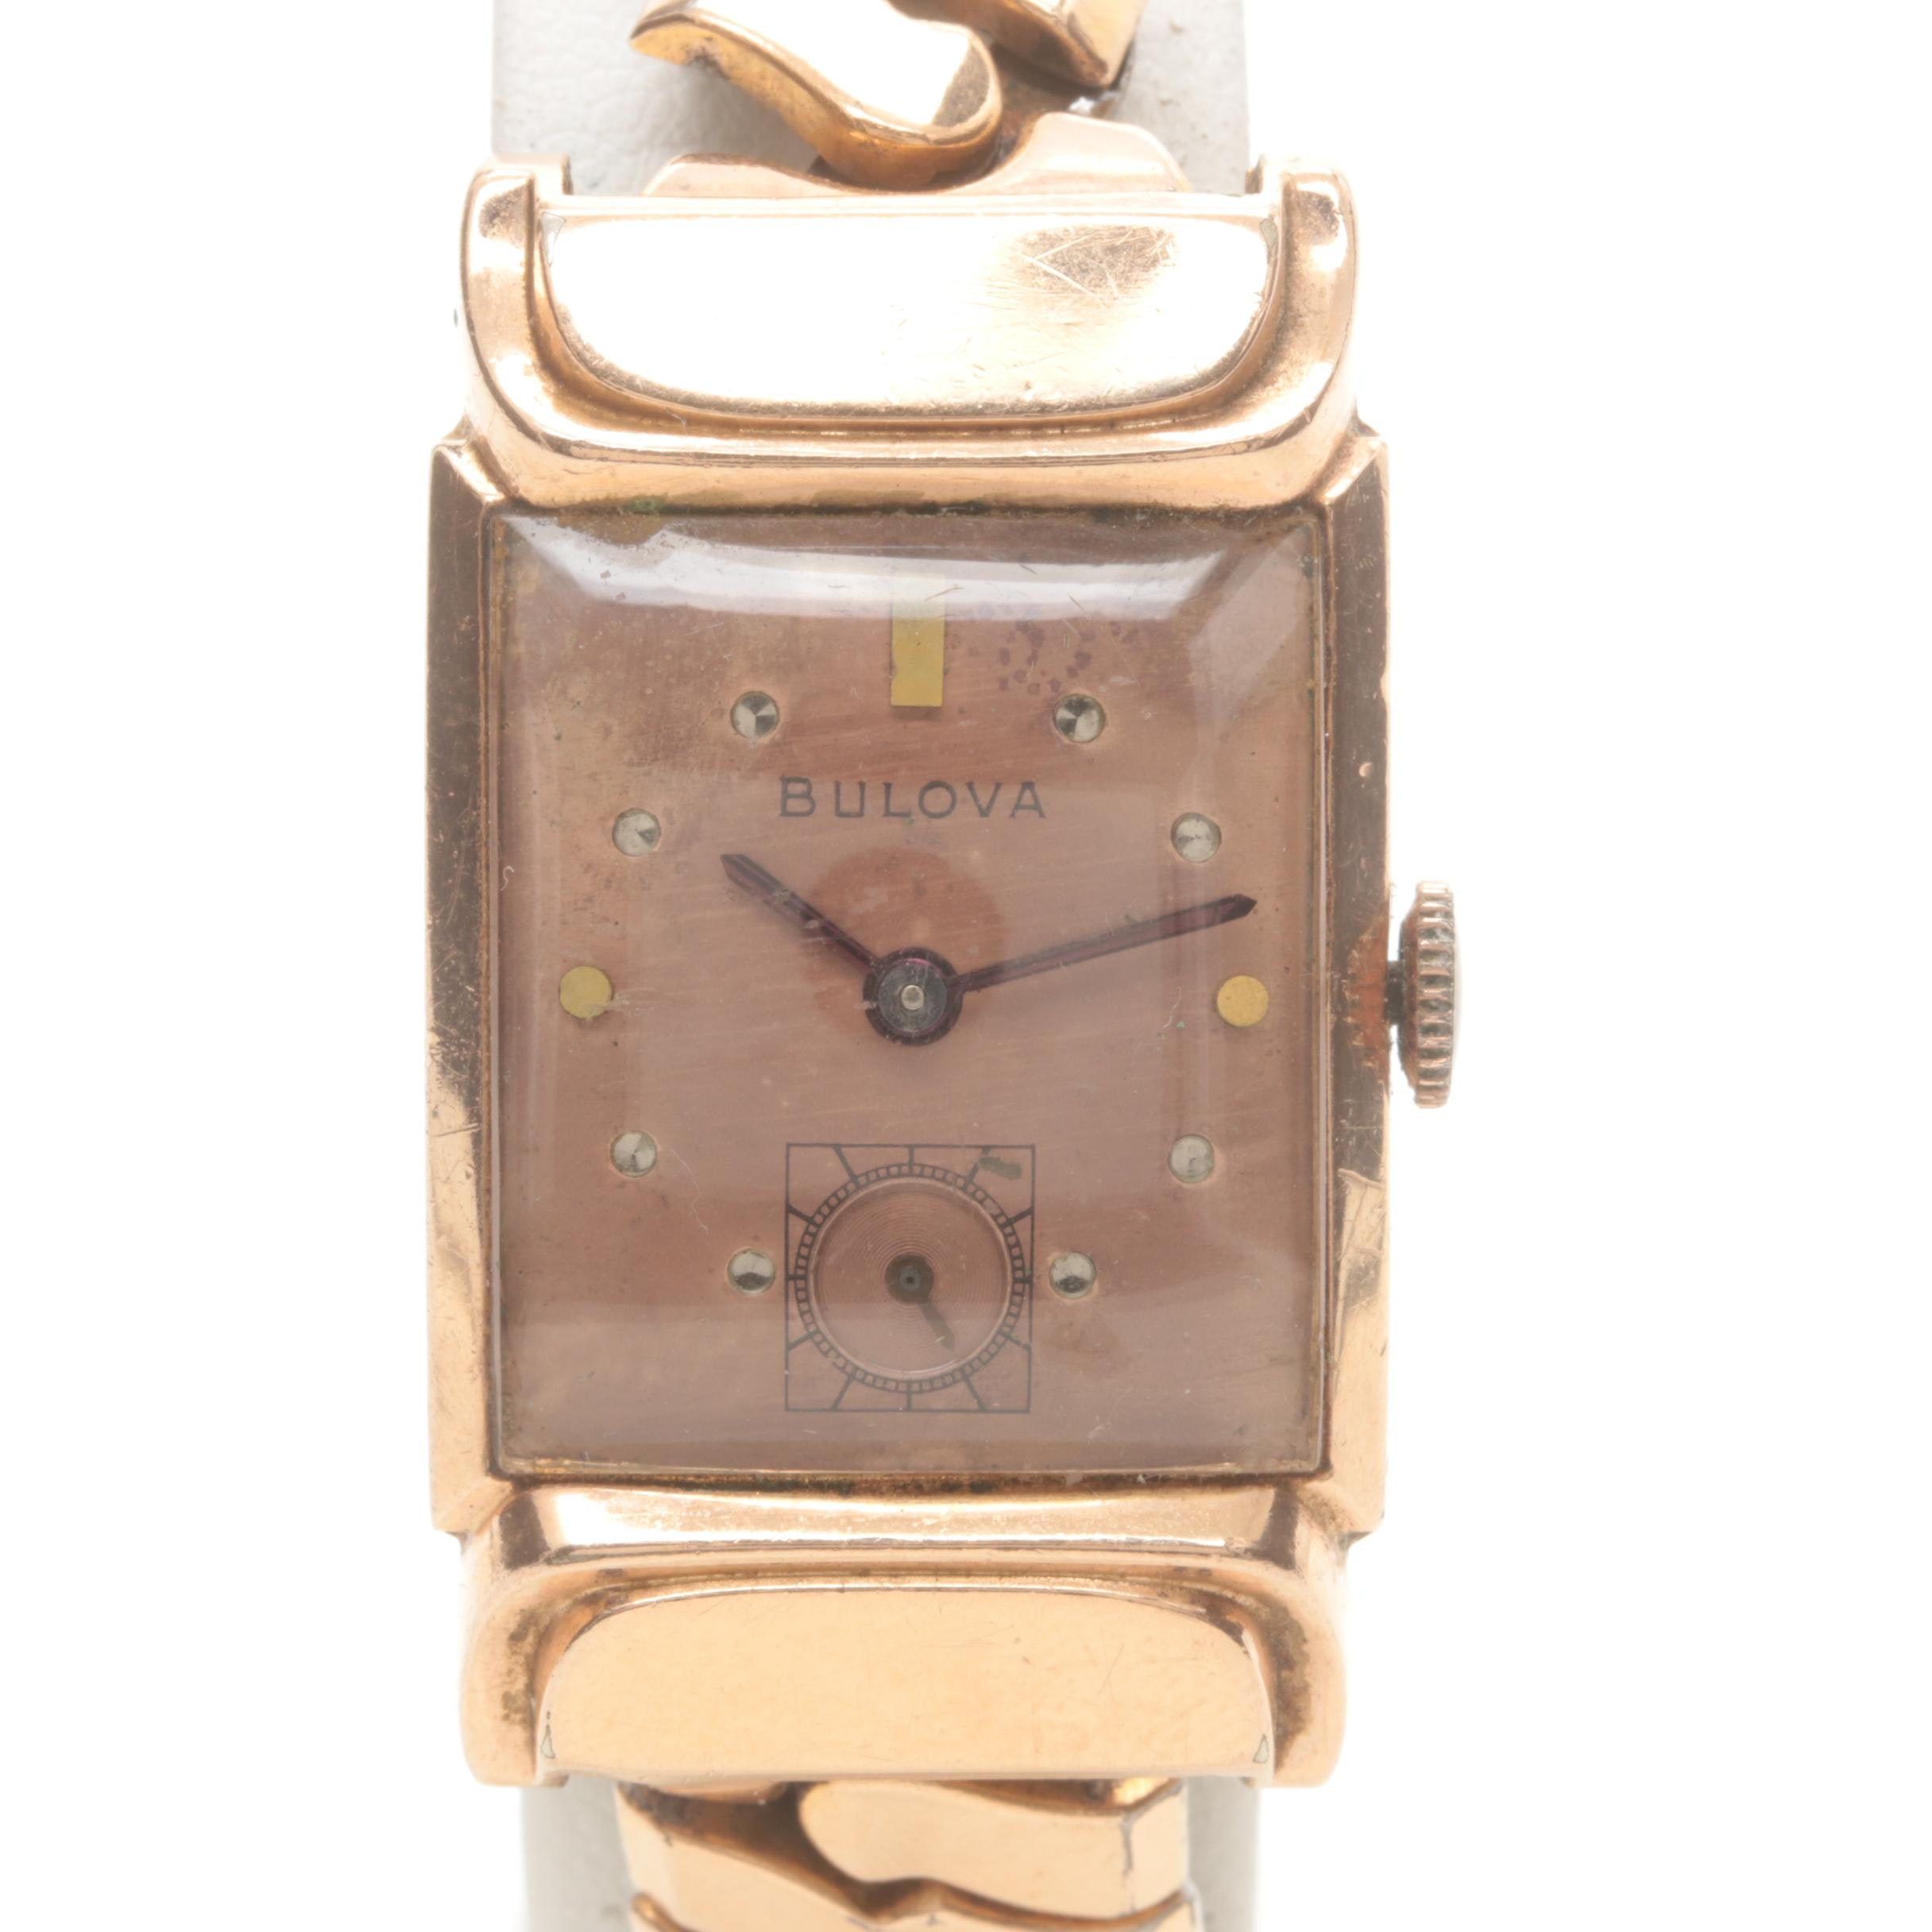 Bulova Gold Filled and Stainless Steel Stem Wind Wristwatch